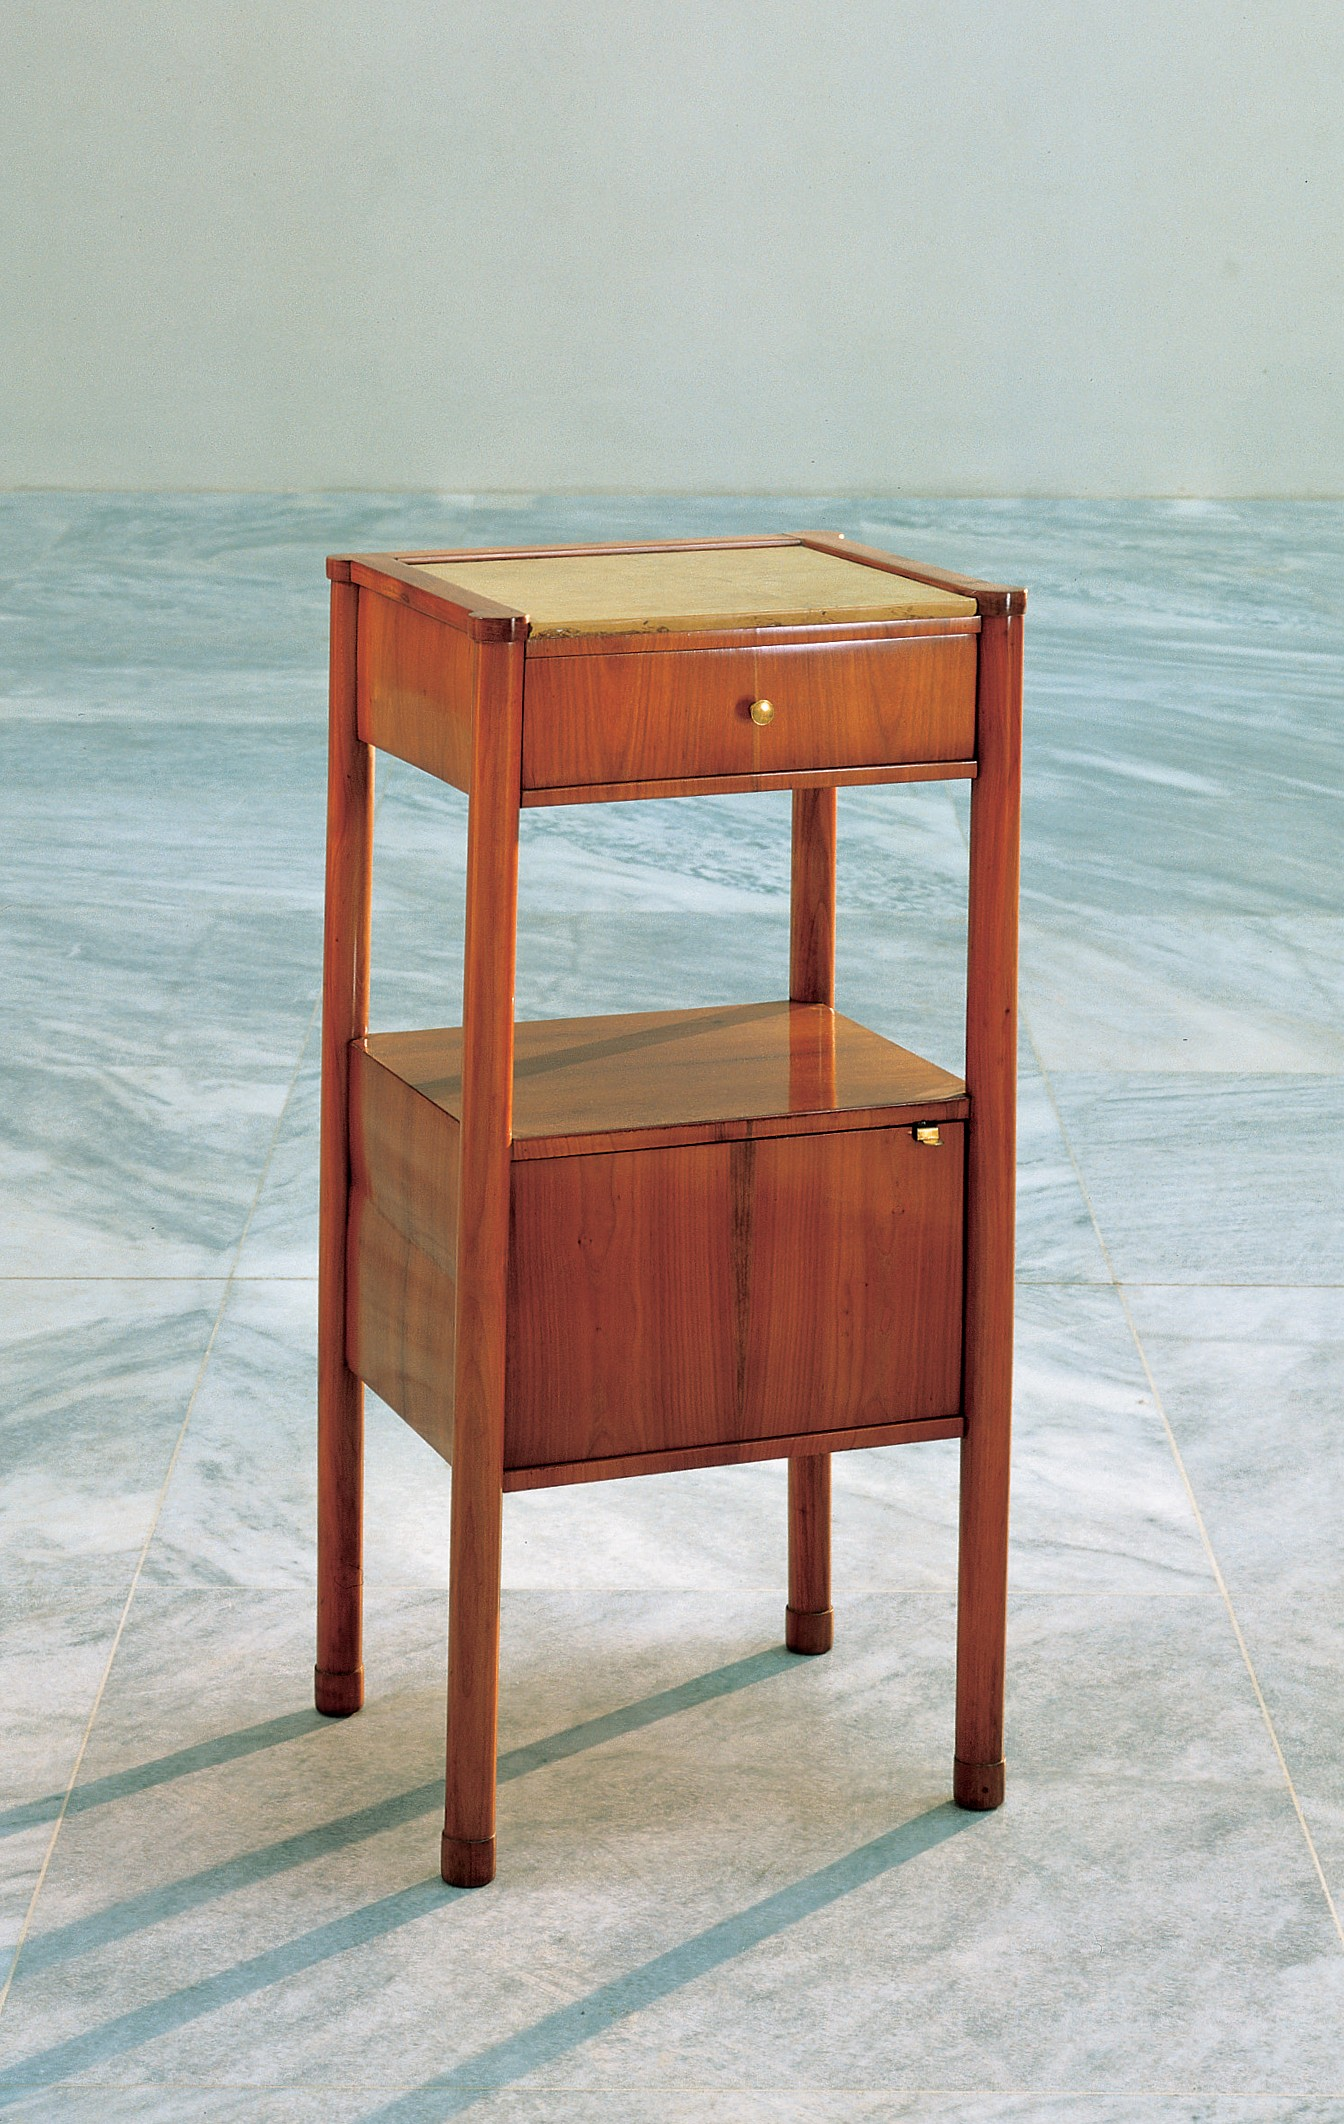 <BODY><div>BEDSIDE TABLE</div><div>Vienna, 1825–1830</div><div>Cherry wood, solid and veneered, Kehlheim limestone top, brass fittings</div><div>H 3042 / 1989</div></BODY>